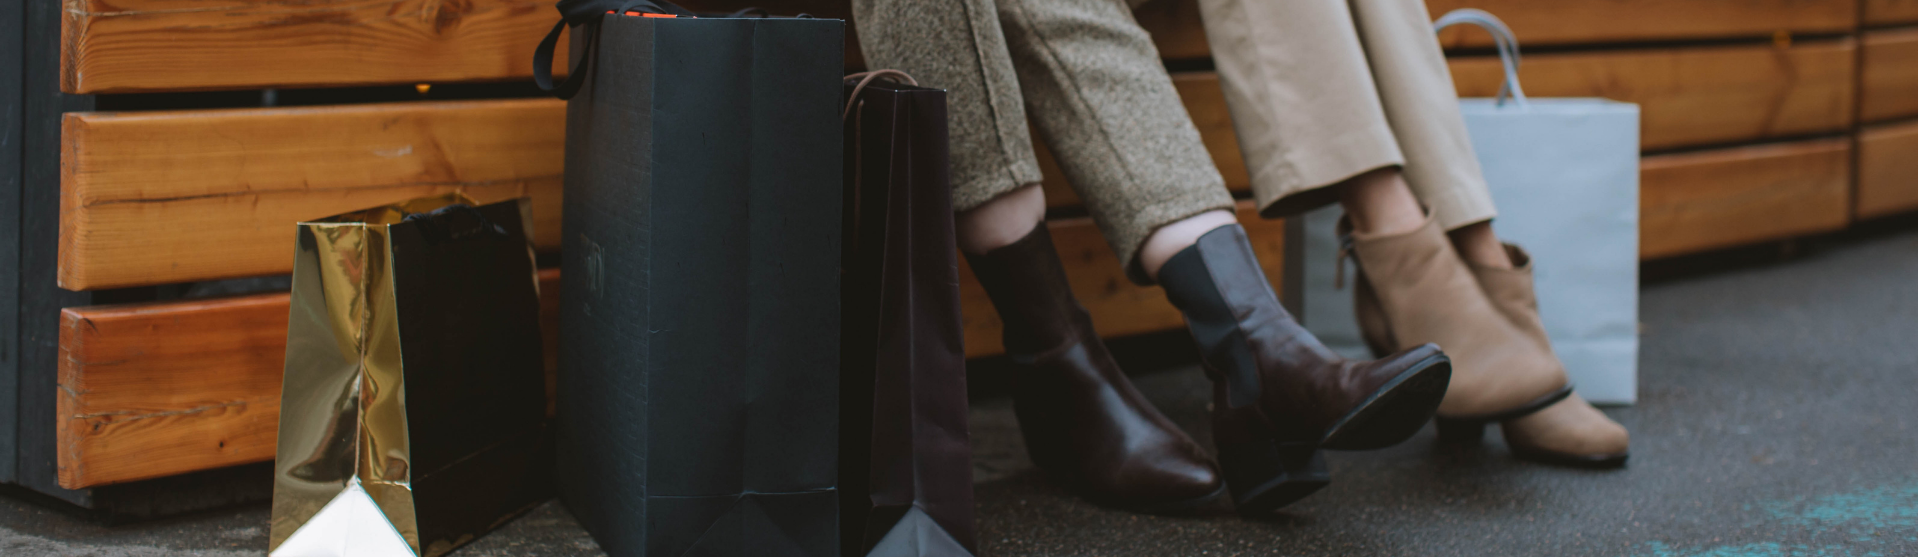 Photo of shopping bag and women's shoes